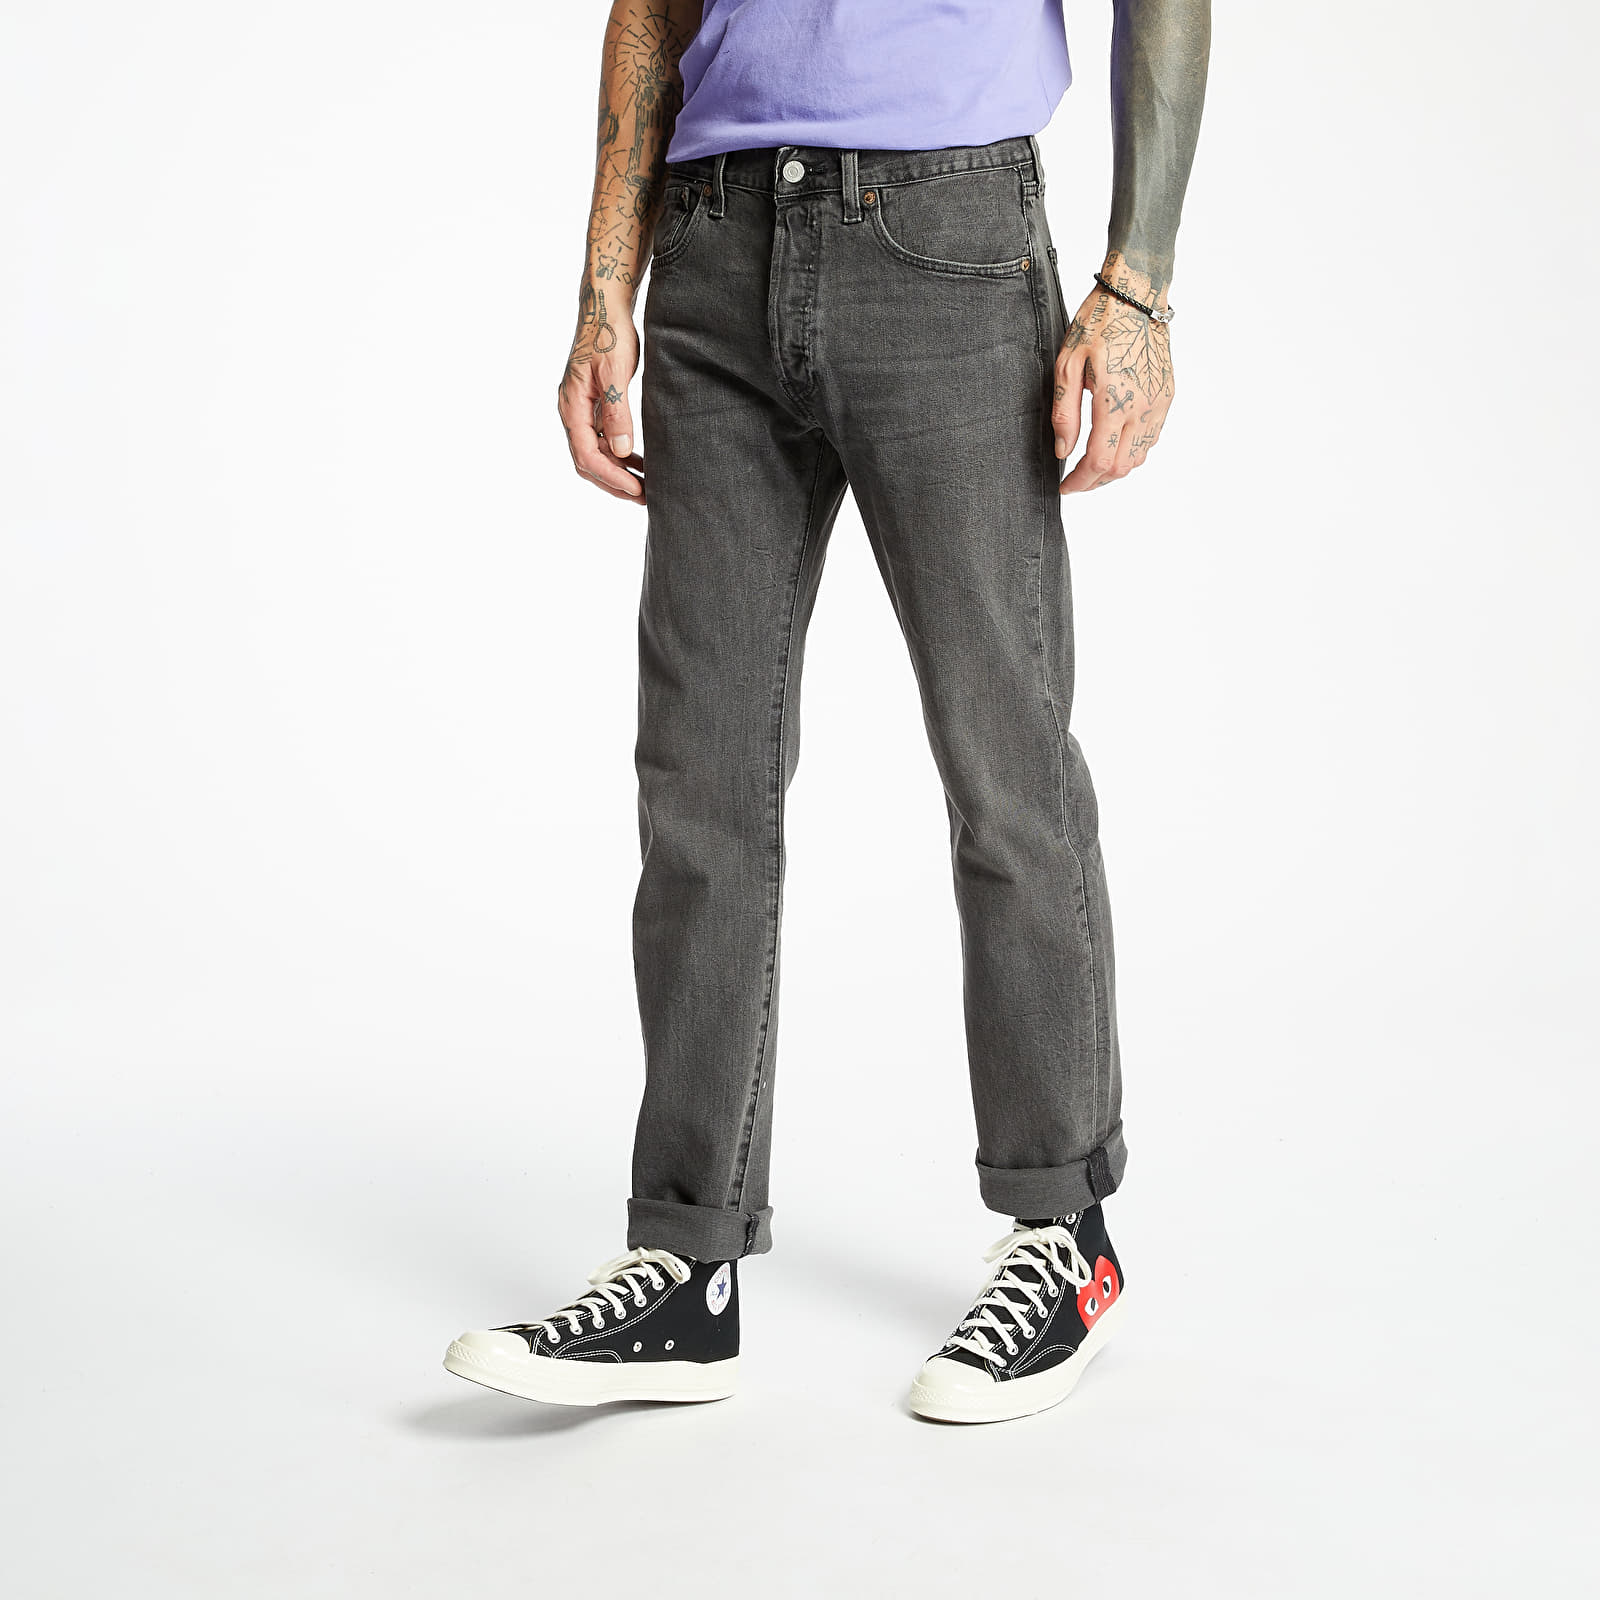 Pants and jeans Levi's 501 Original Jeans Grey